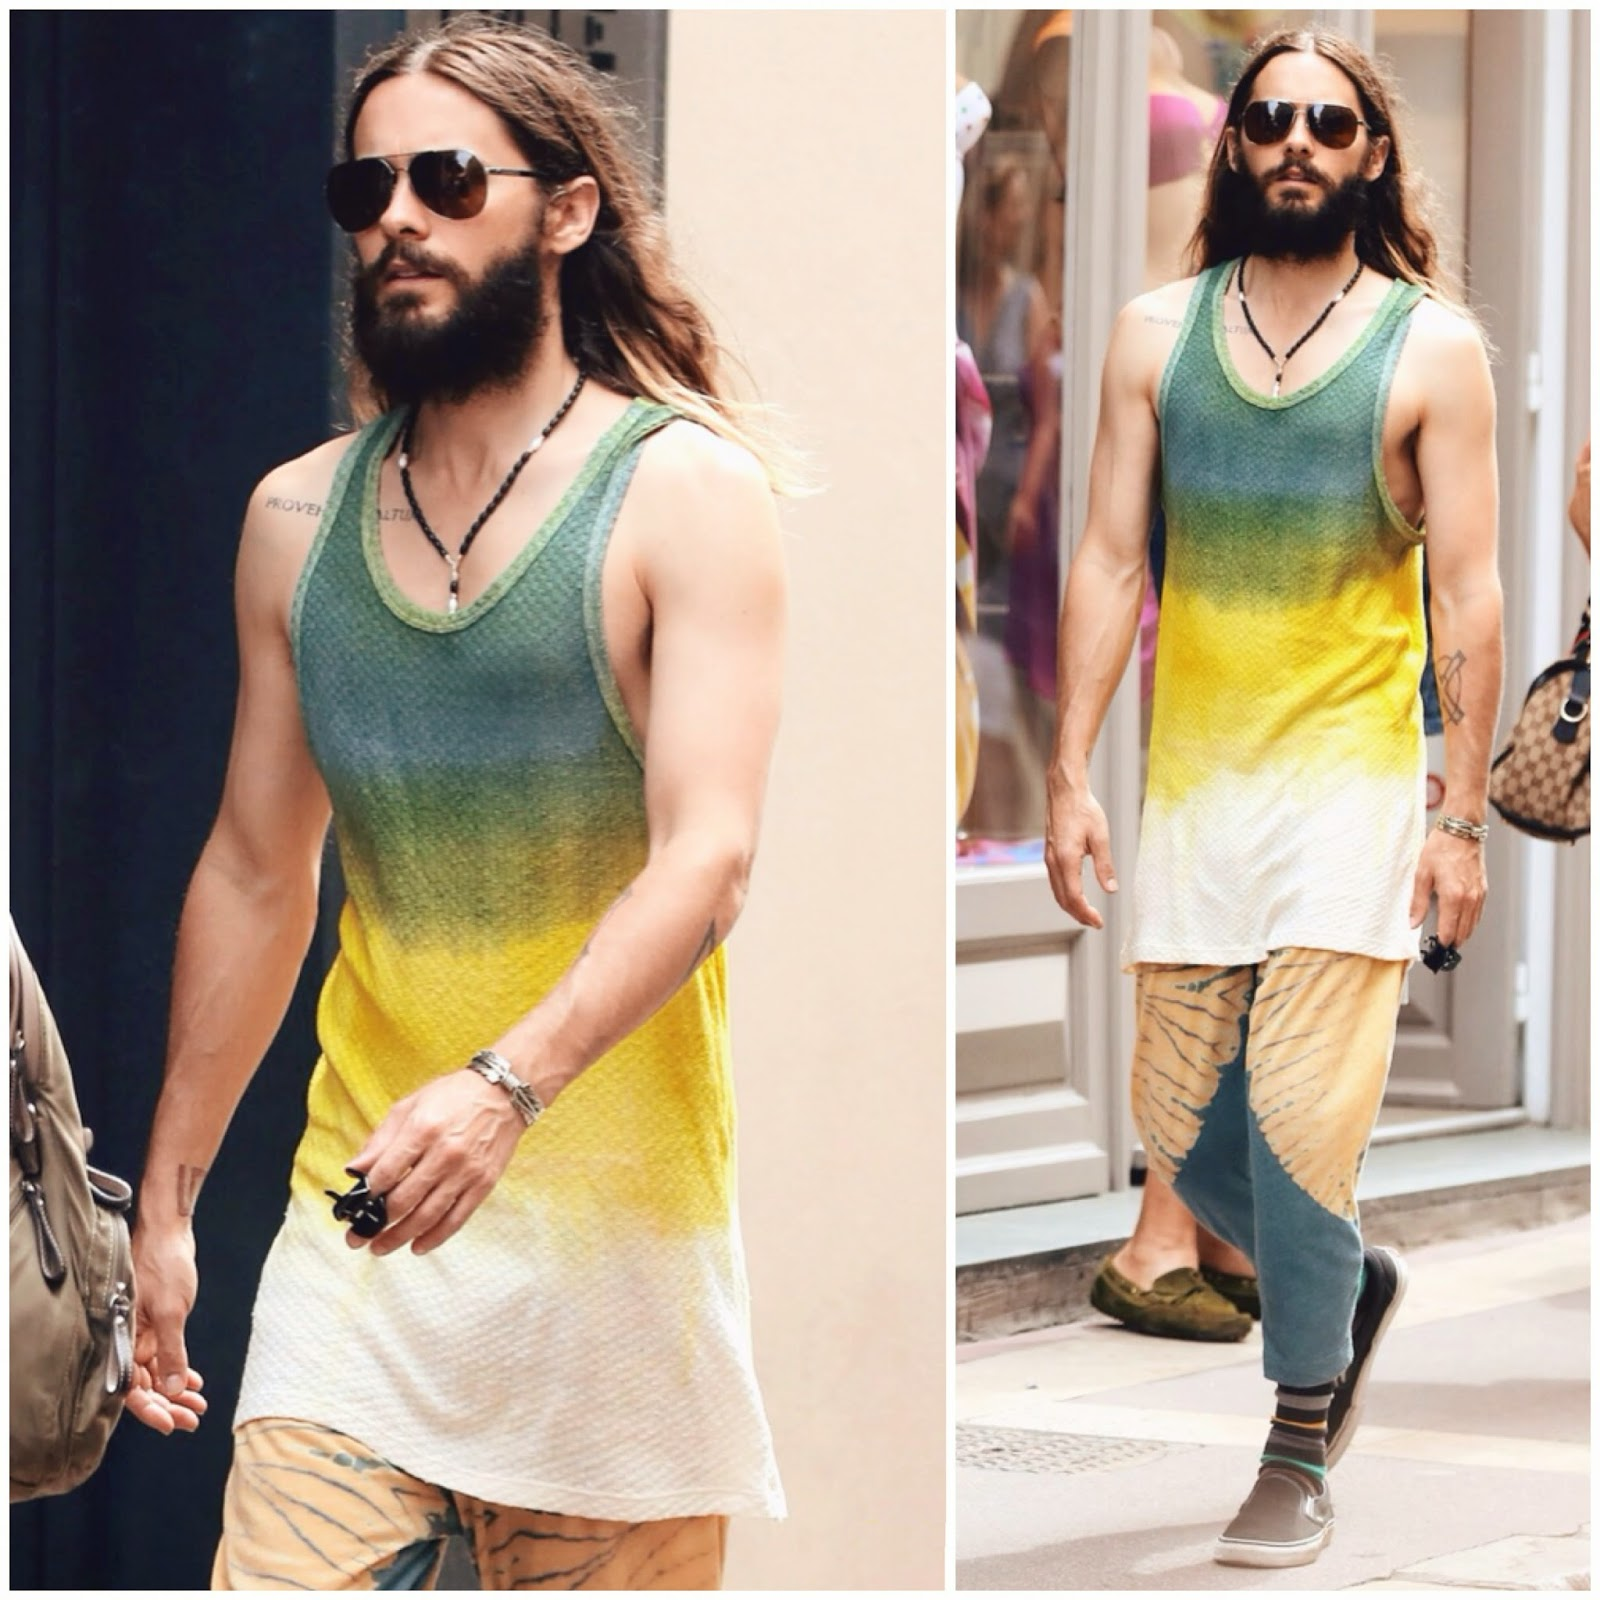 Jared Leto in The Elder Statesman tiedye ombre green yellow white vest in Saint Tropez 20th July 2014